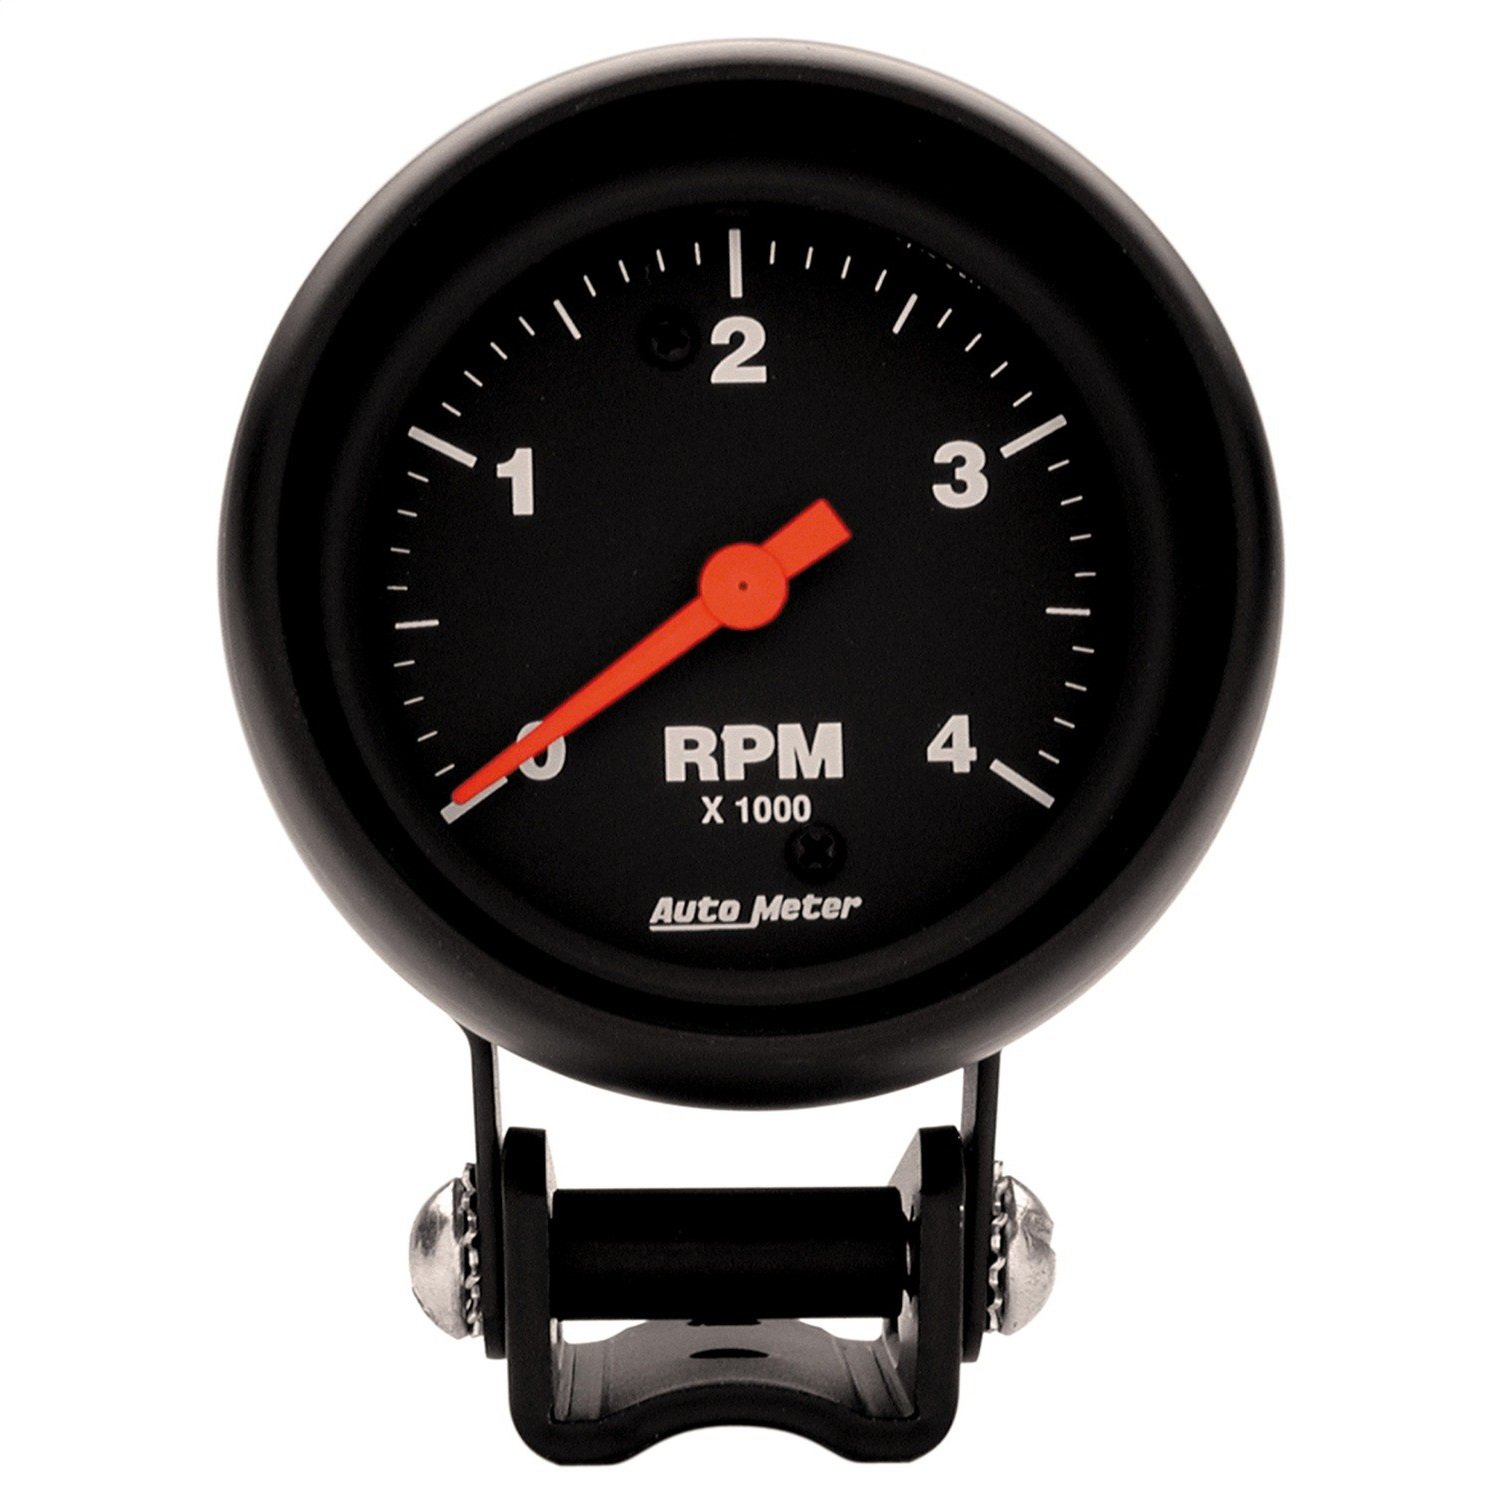 Best Rated In Automotive Performance Ignition Electrical Gauges 1982 Ford F 150 Factory Tach Wiring Auto Meter 2890 Tachometer Product Image